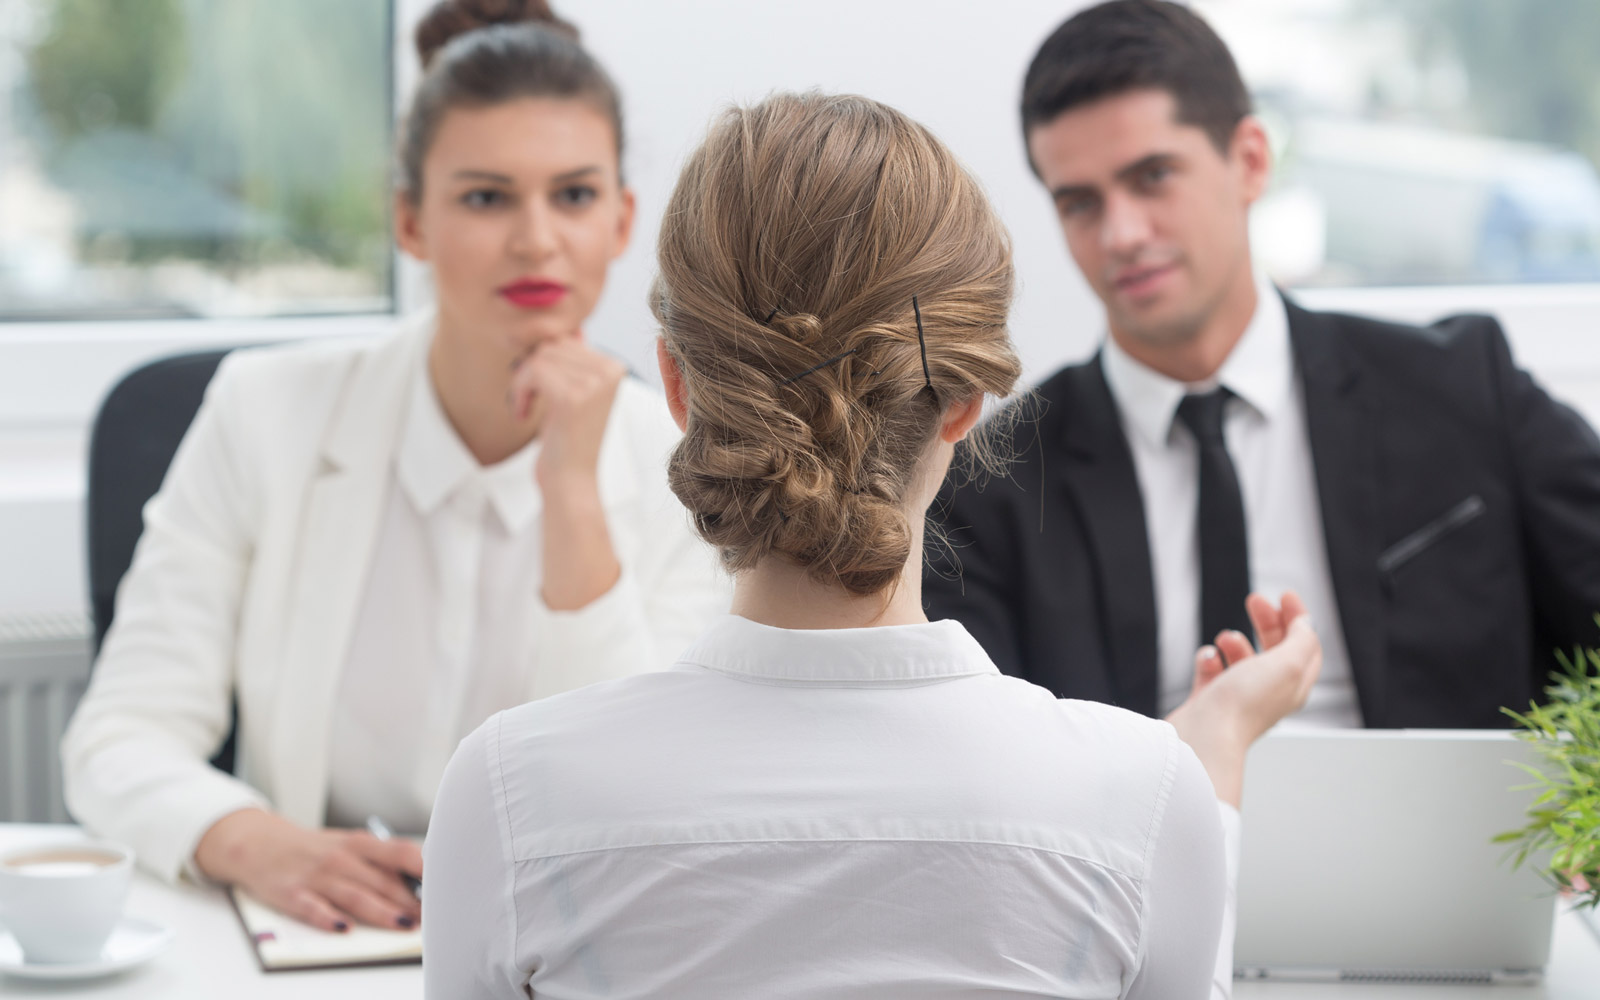 One Big Interviewing Mistake You'll Want to Avoid